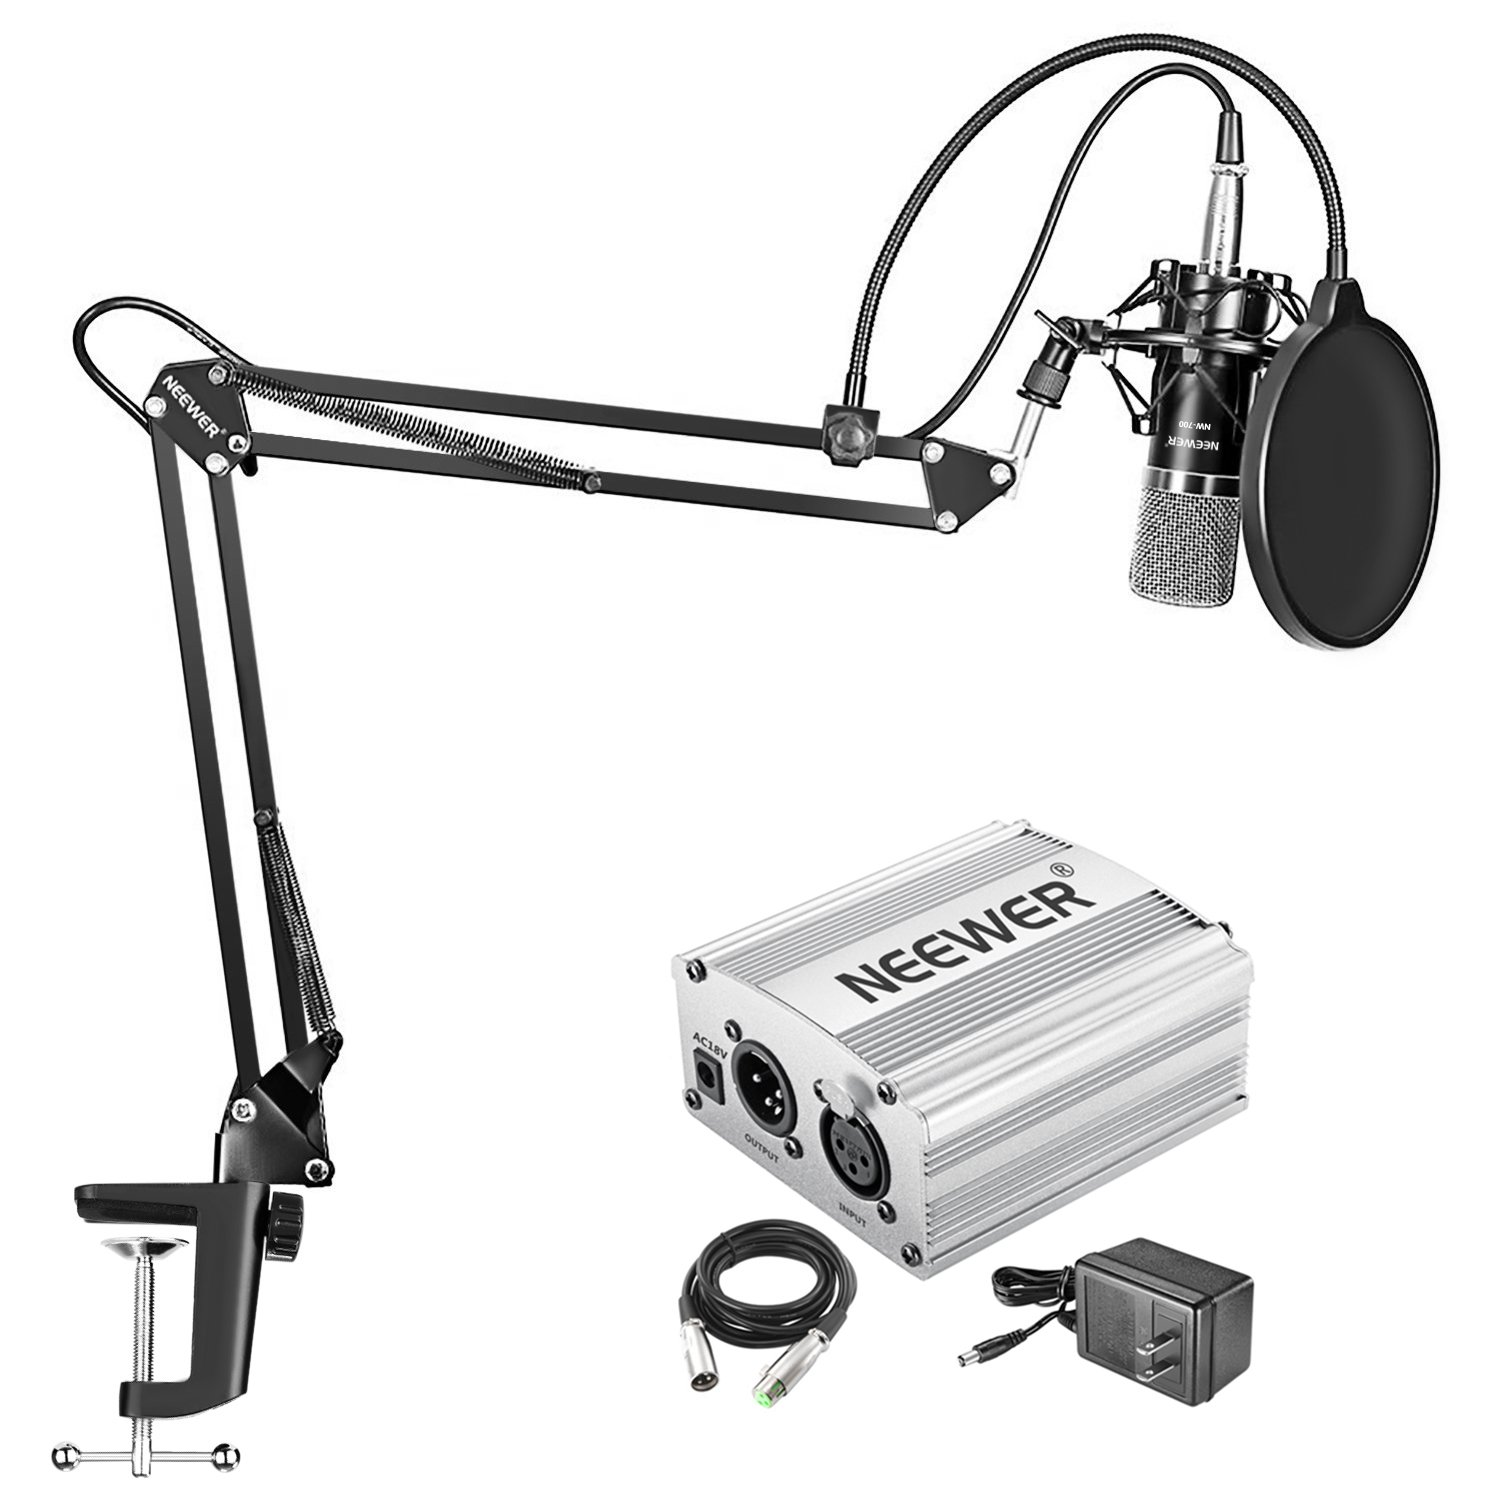 Neewer NW-700 Condenser Microphone Kit - Mic(Black) and 48V Phantom Power Supply(Silver),NW-35 Boom Scissor Arm Stand with Shock Mount and Pop Filter,XLR Male to Female Cable for Home Studio Recording by Neewer